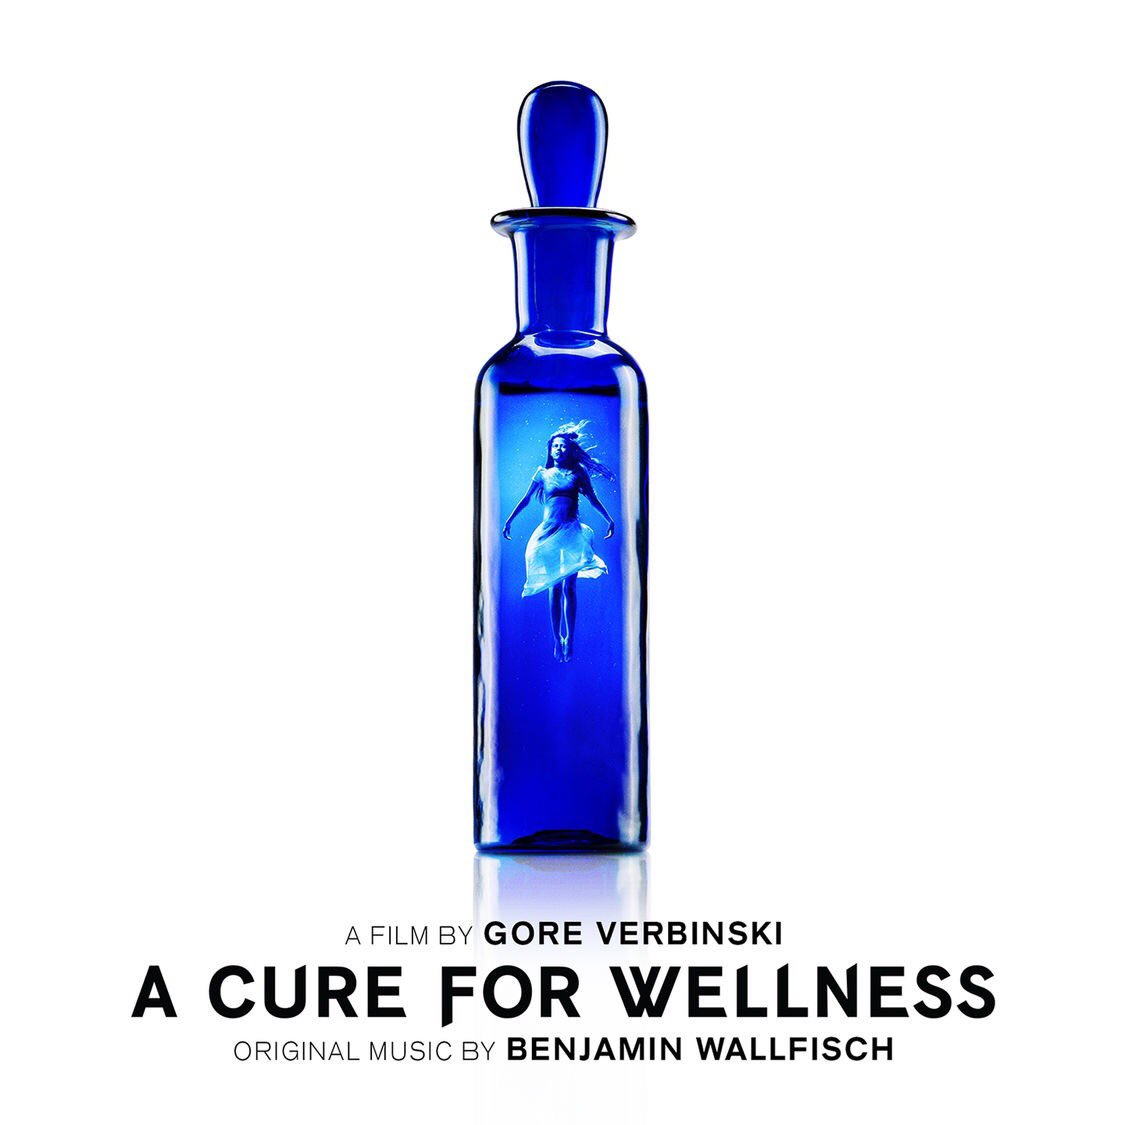 #Nowplaying Hannah and Volmer - Benjamin Wallfisch (A Cure for Wellness (Gore Verbinski's Original Motion Picture Soundtrack)) ♪  映画「キュア ~禁断の隔離病棟~」で何度も流れる曲。iTunes でサントラから1曲だけ買ってしまった。こういう曲好きだな。 https://t.co/LKlYqAza3e